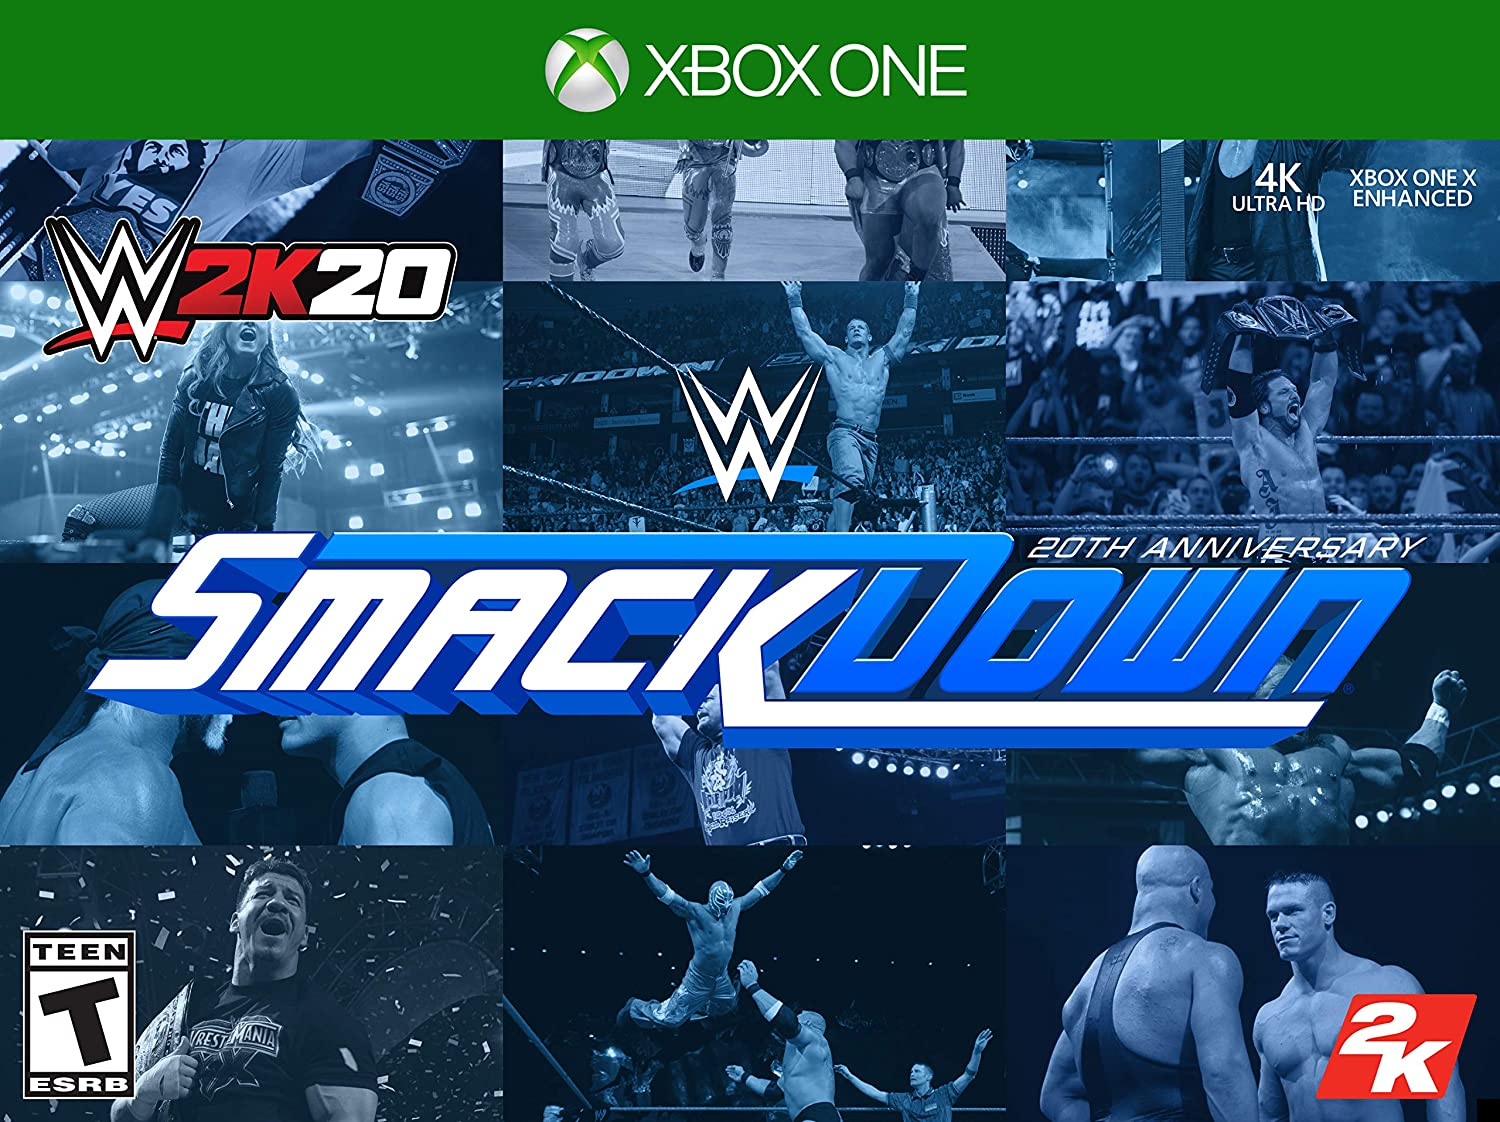 WWE 2K20 SmackDown 20th Max 47% OFF Brand new Anniversary Edition One - Xbox